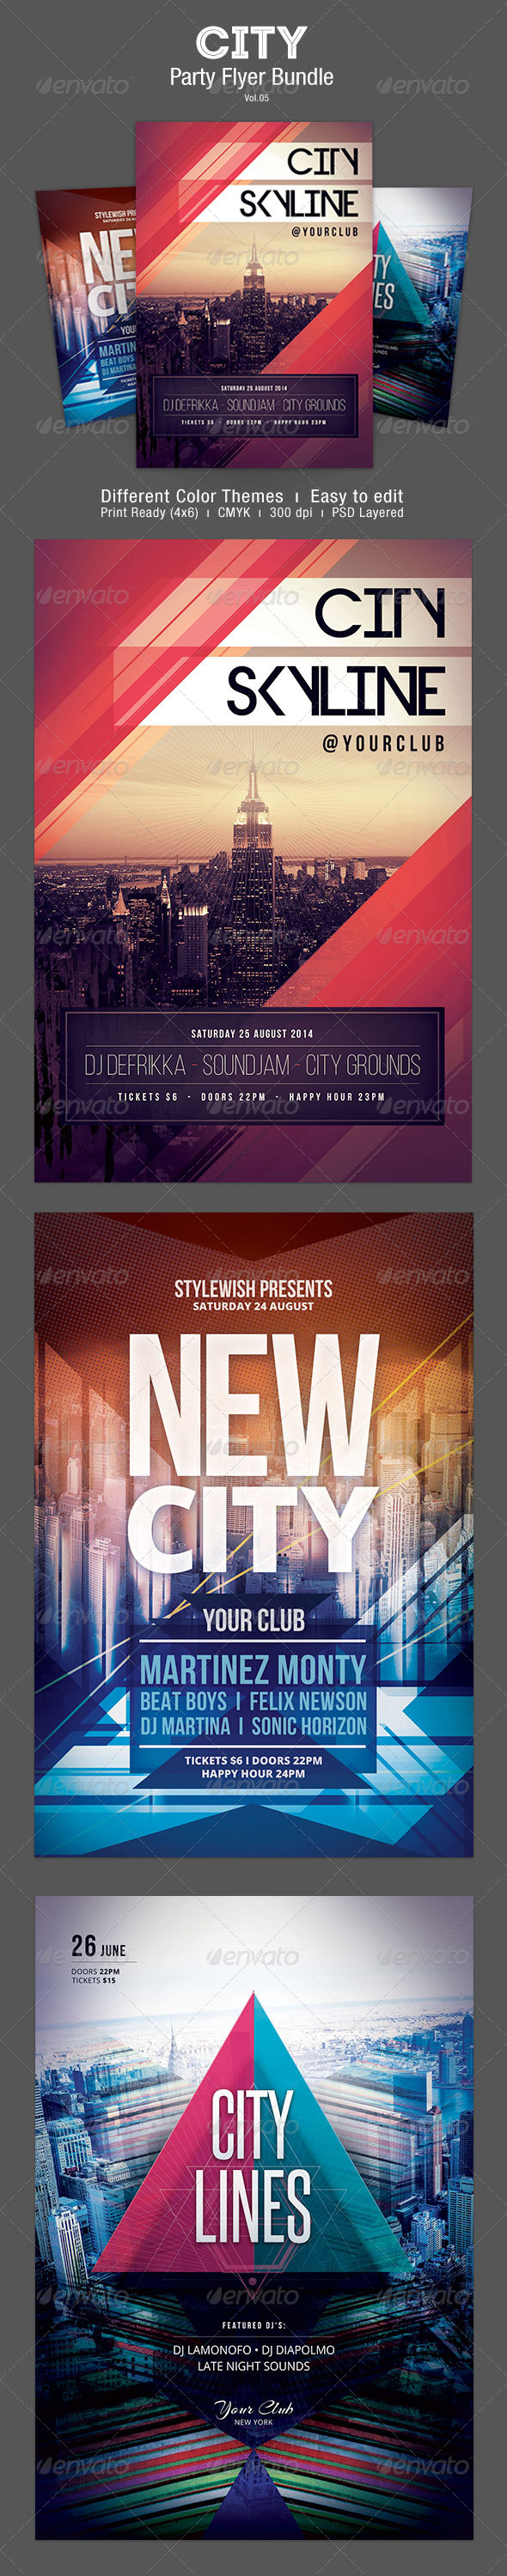 City Party Flyer Bundle Vol.5 - Clubs & Parties Events